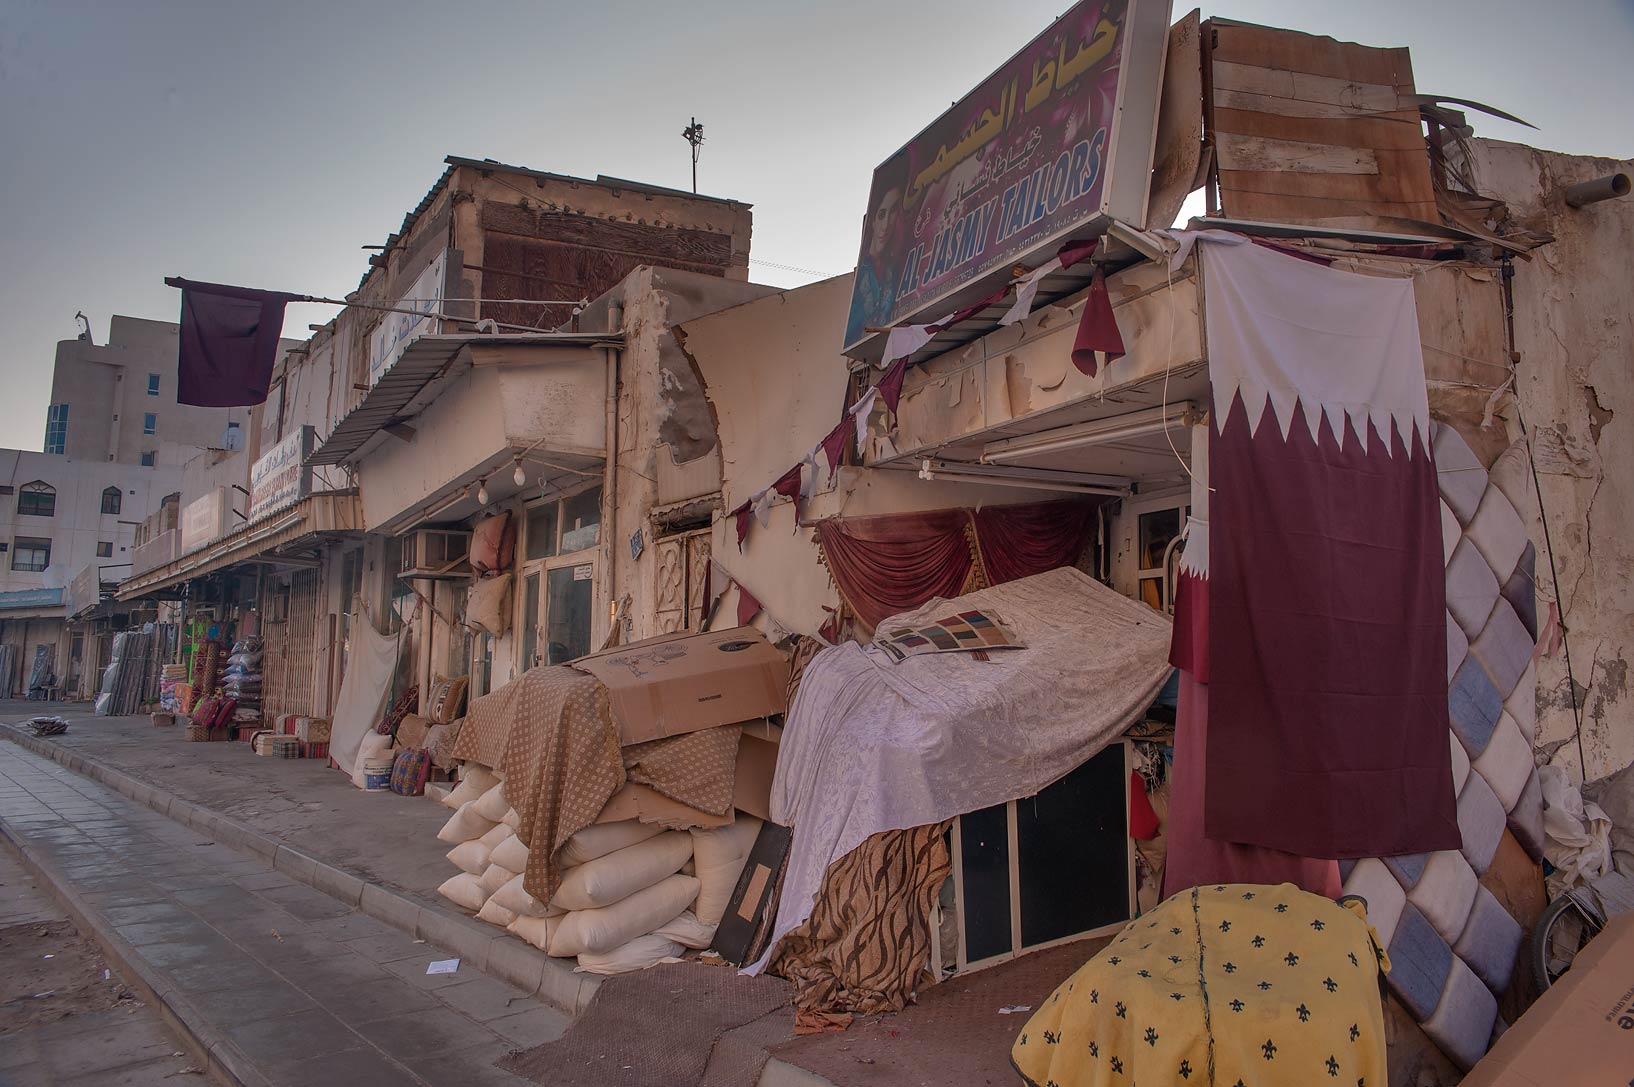 Mattress shops on Barahat Al Jufairi St., opposite to Al Najada. Doha, Qatar